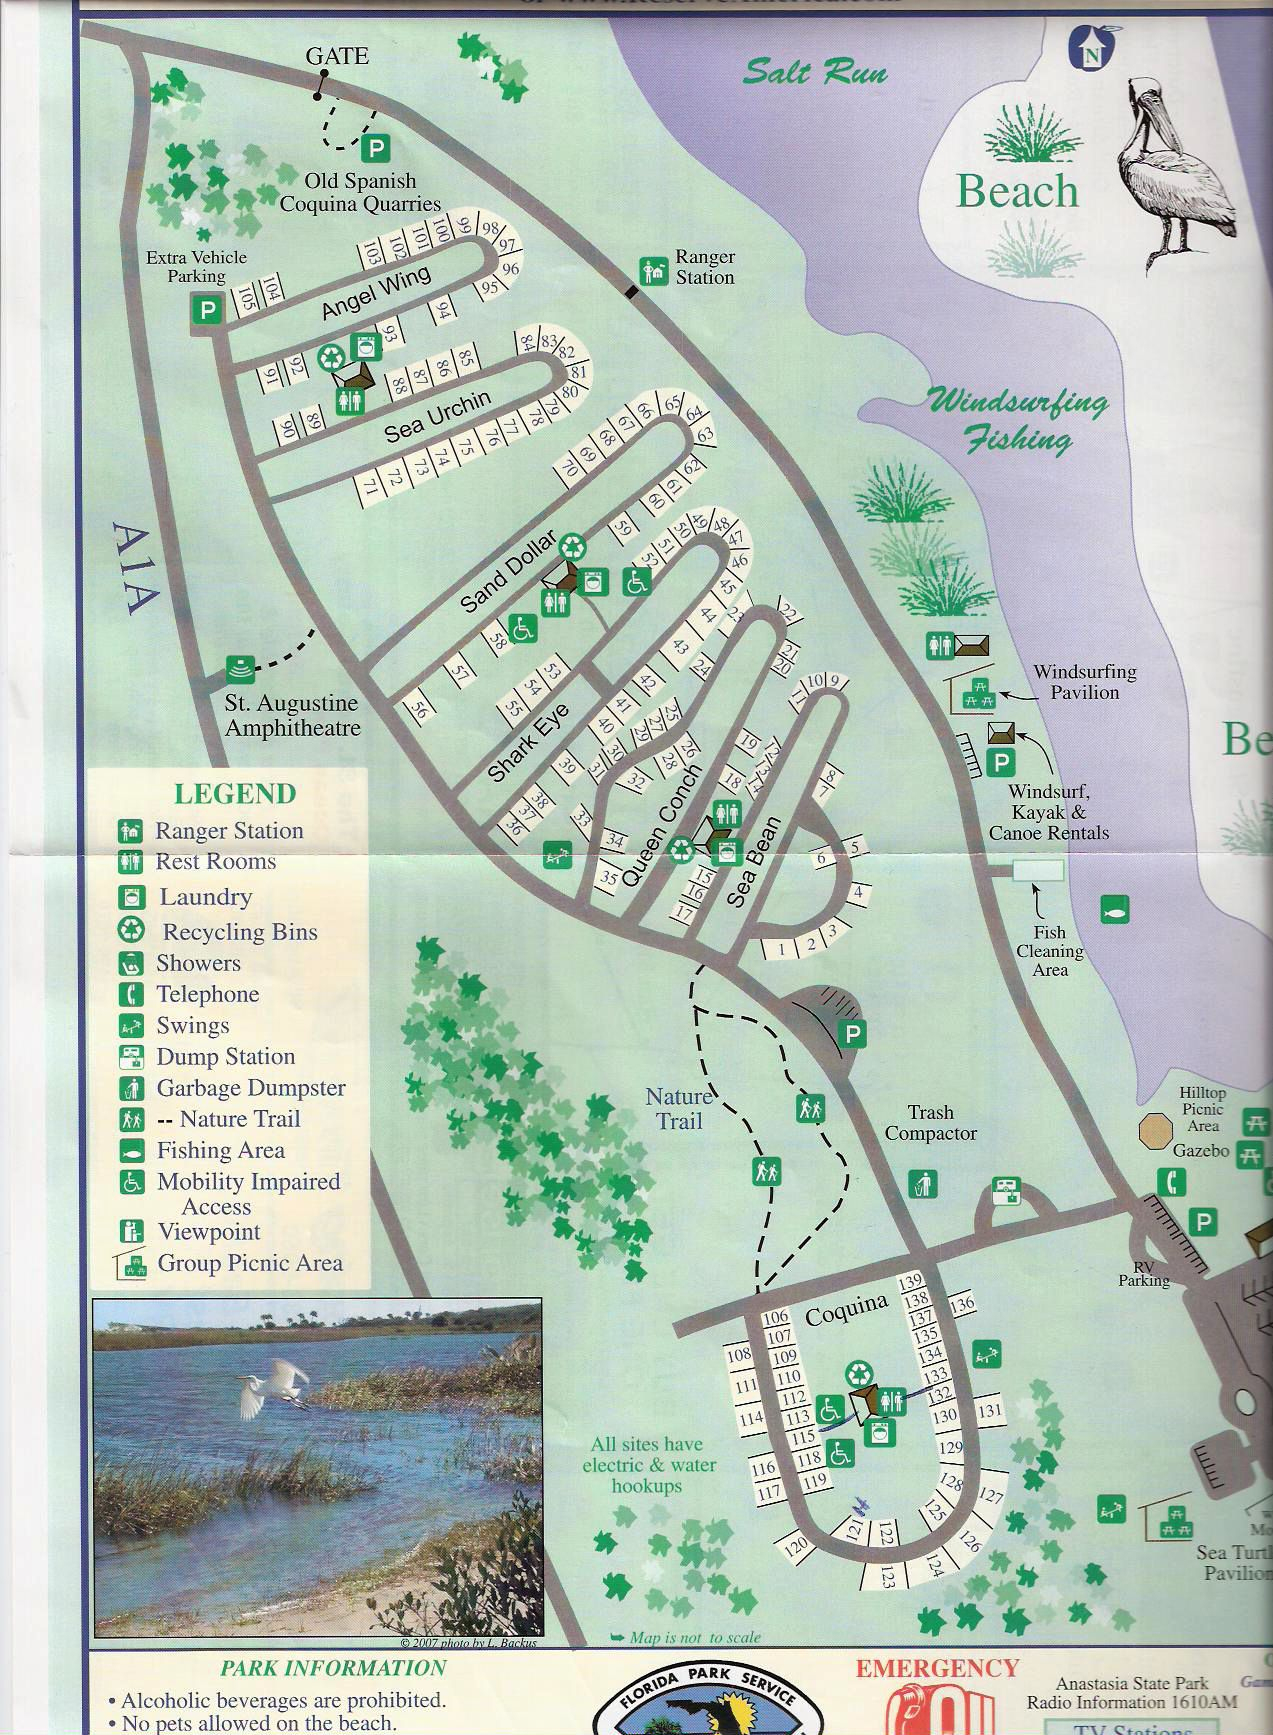 Campground Map - Anastasia State Park - St. Augustine - Florida - Camping In Florida State Parks Map